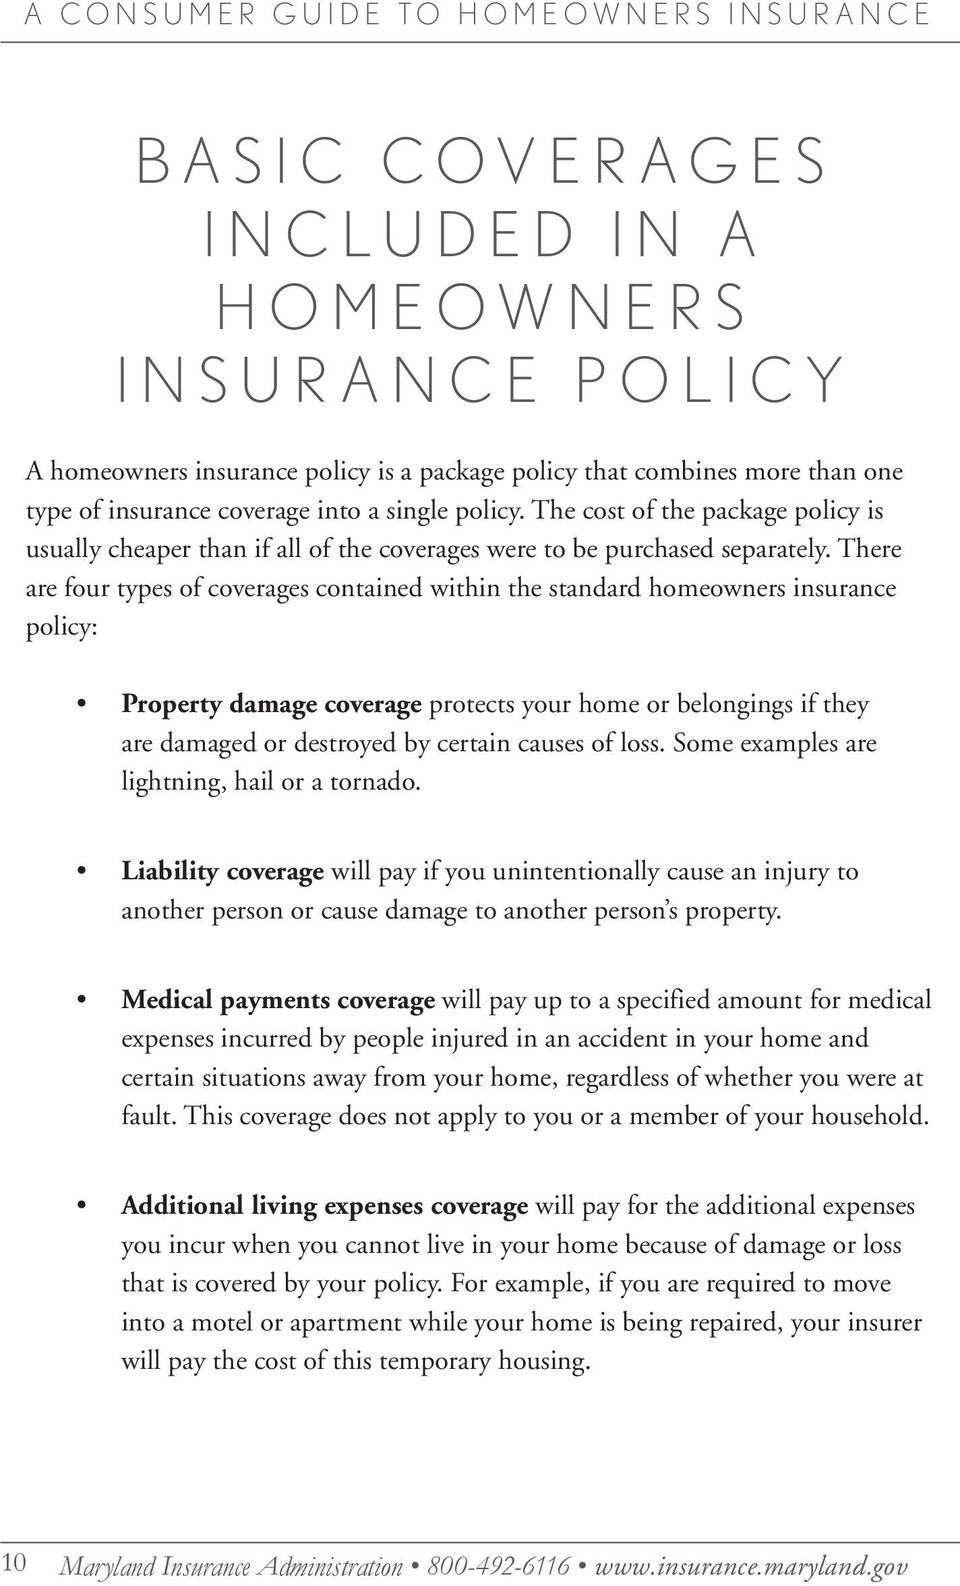 There are four types of coverages contained within the standard homeowners insurance policy: Property damage coverage protects your home or belongings if they are damaged or destroyed by certain